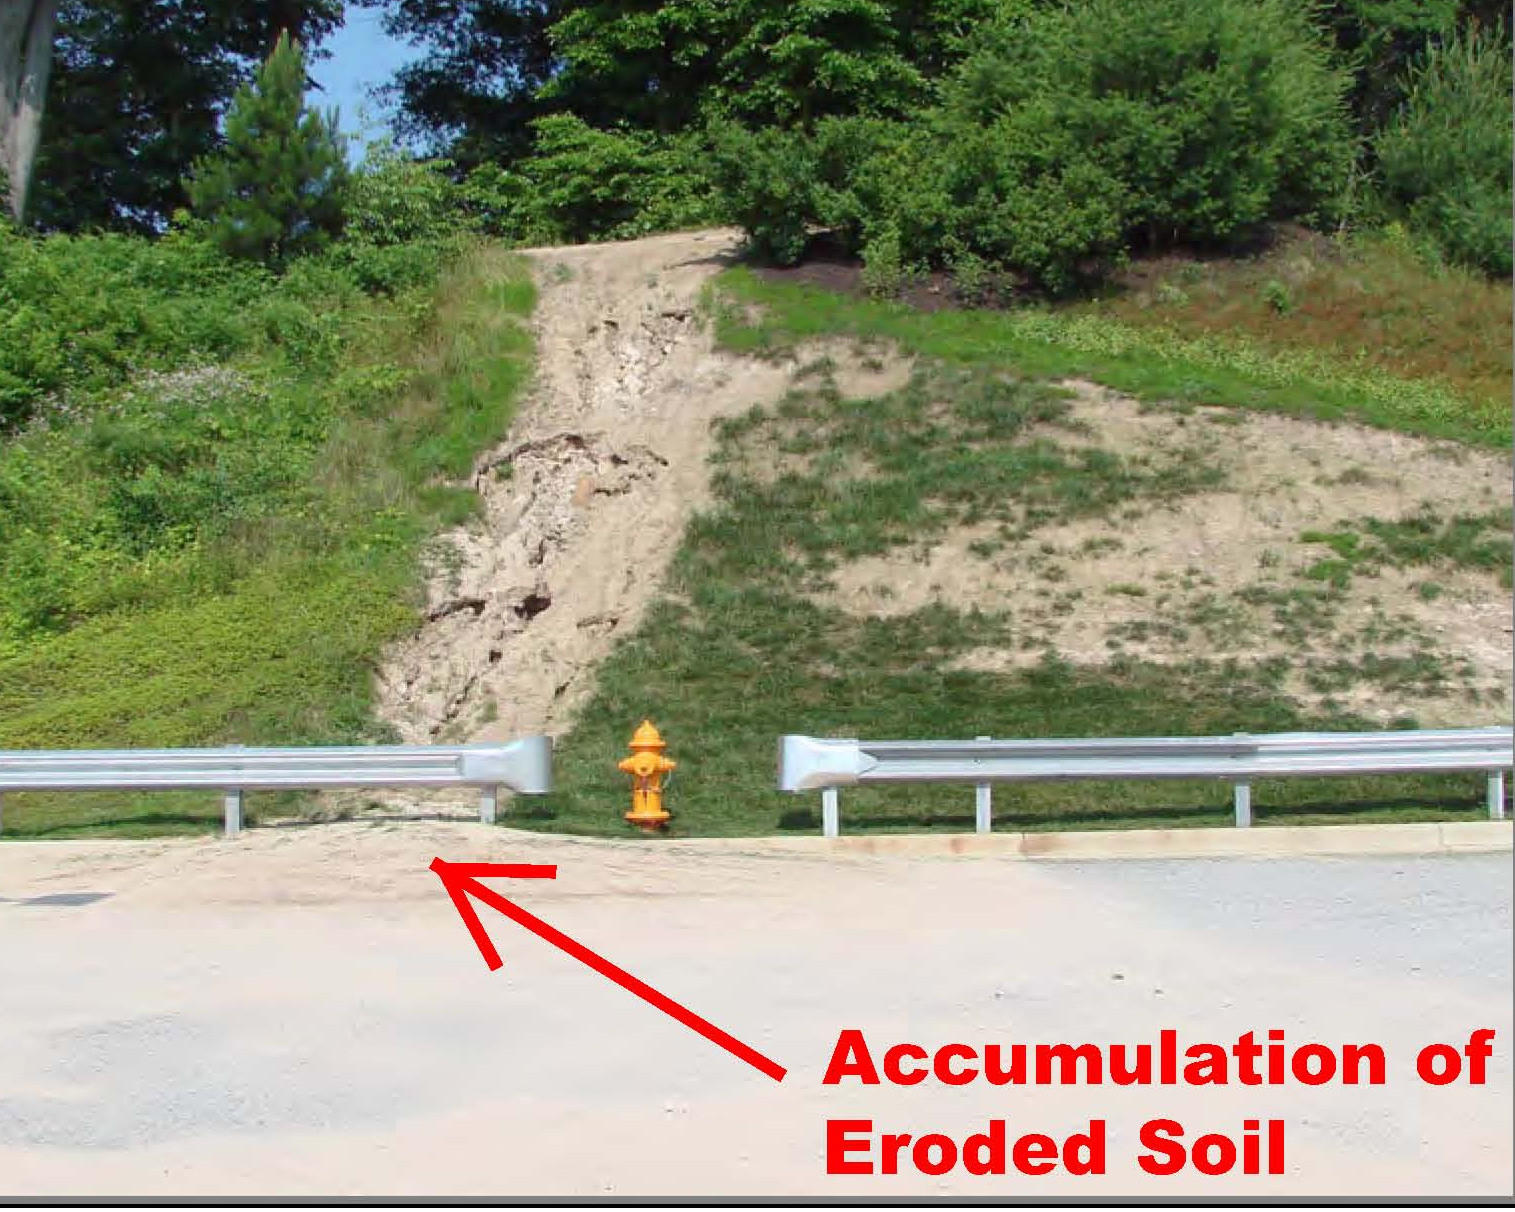 Survey found bare soil at construction sites like this one, where erosion is carving a gully in a slope, with dirt being washed onto pavement.